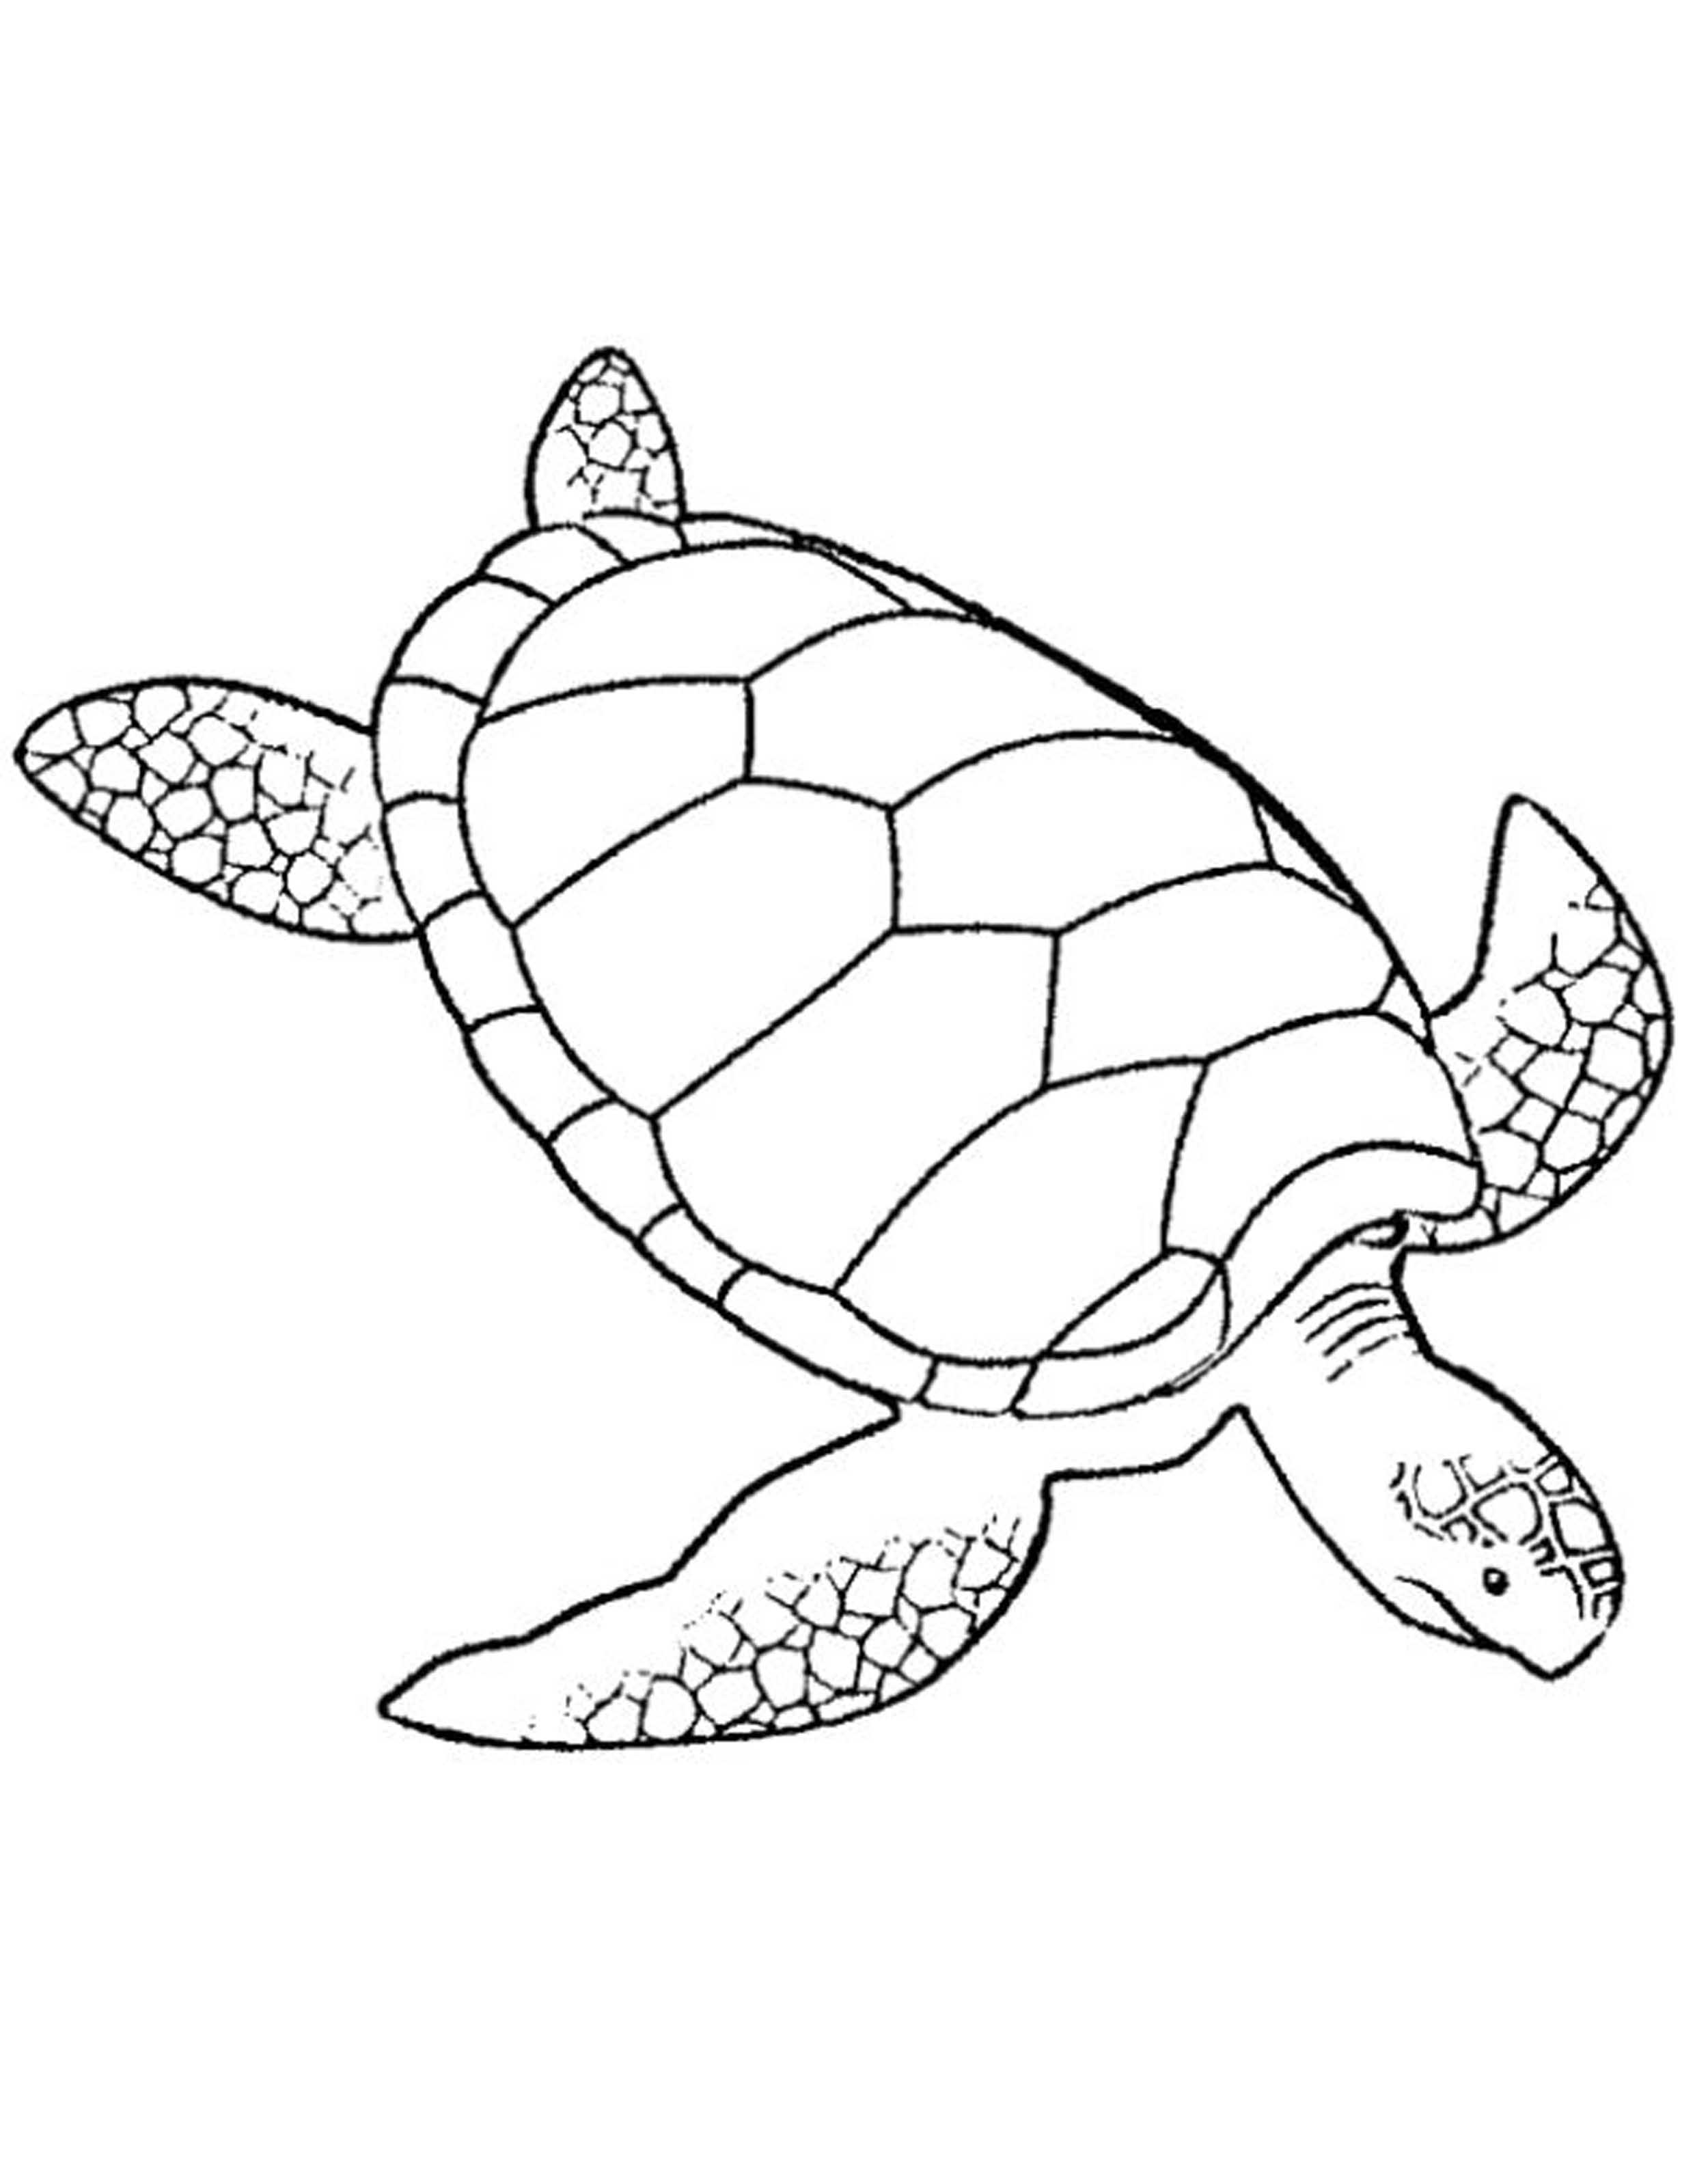 coloring turtles print download turtle coloring pages as the coloring turtles